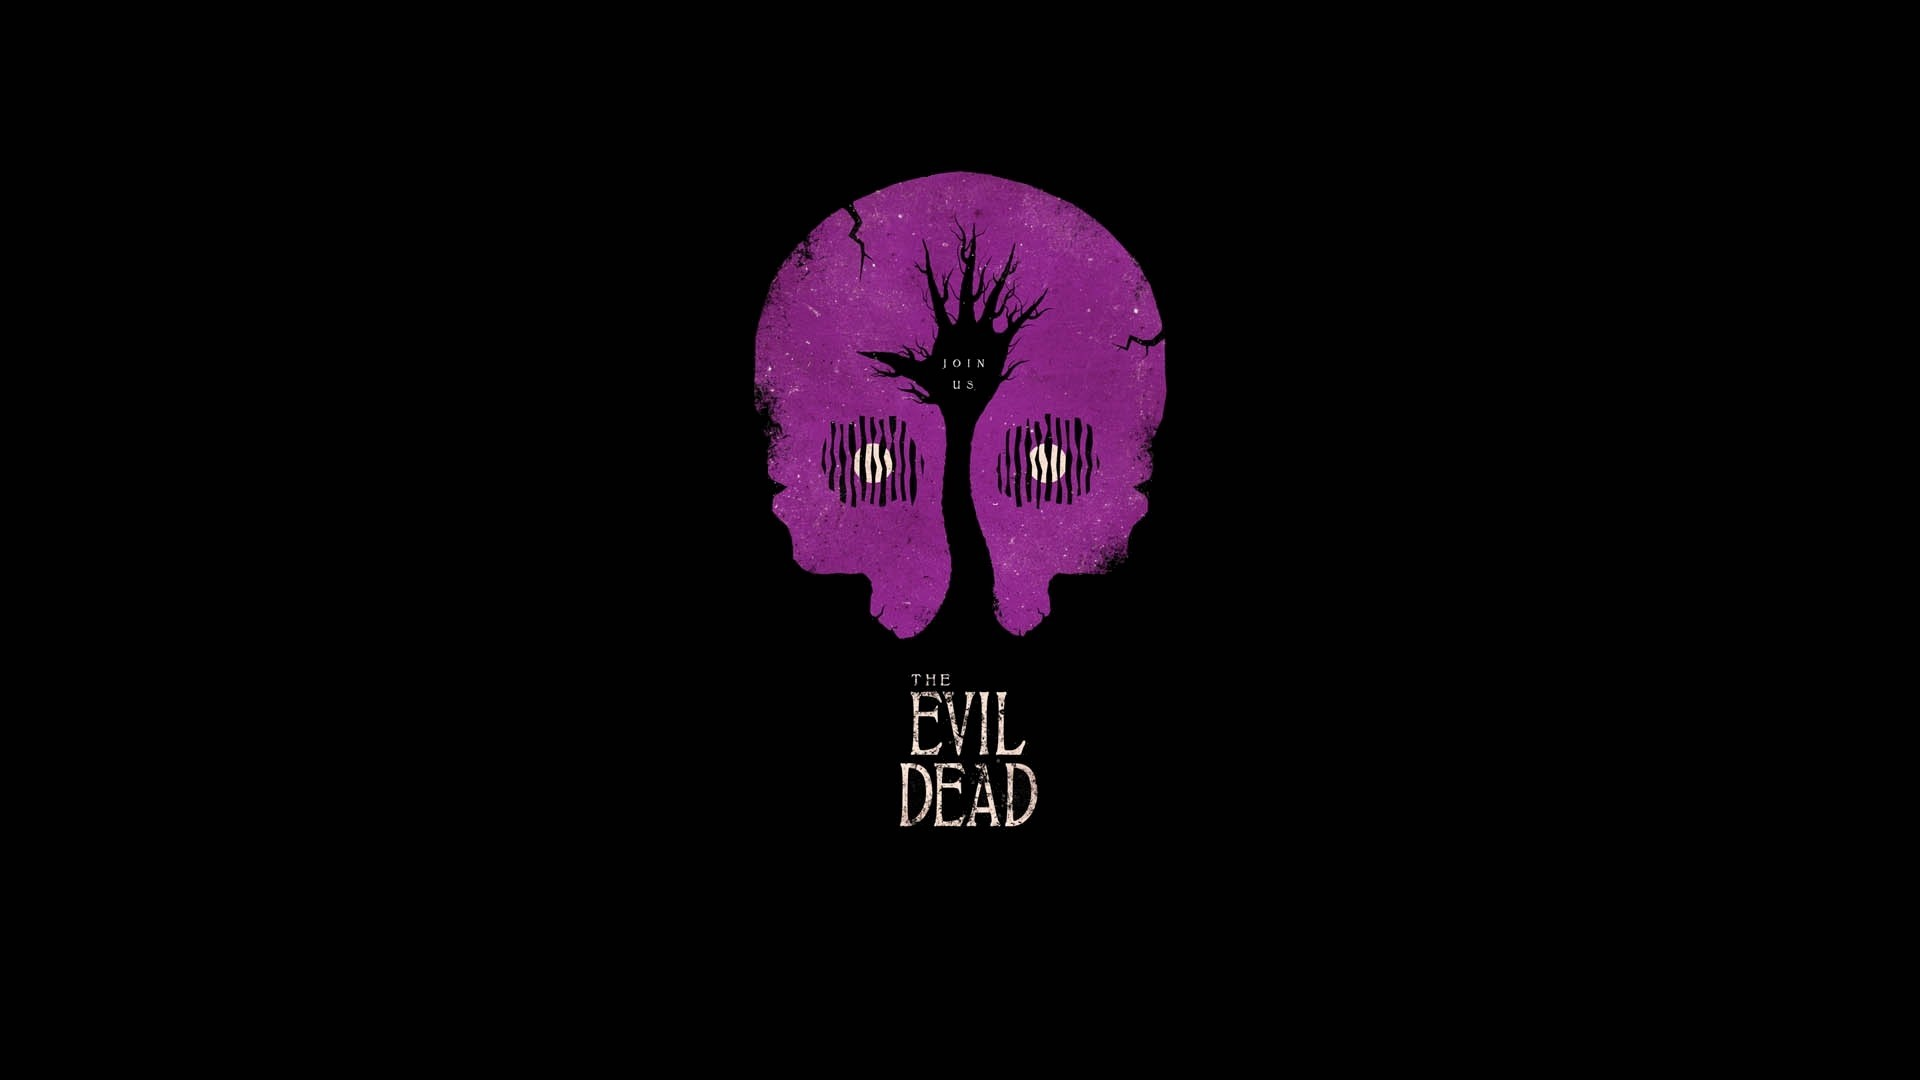 evil dead wallpapers hd 68 images